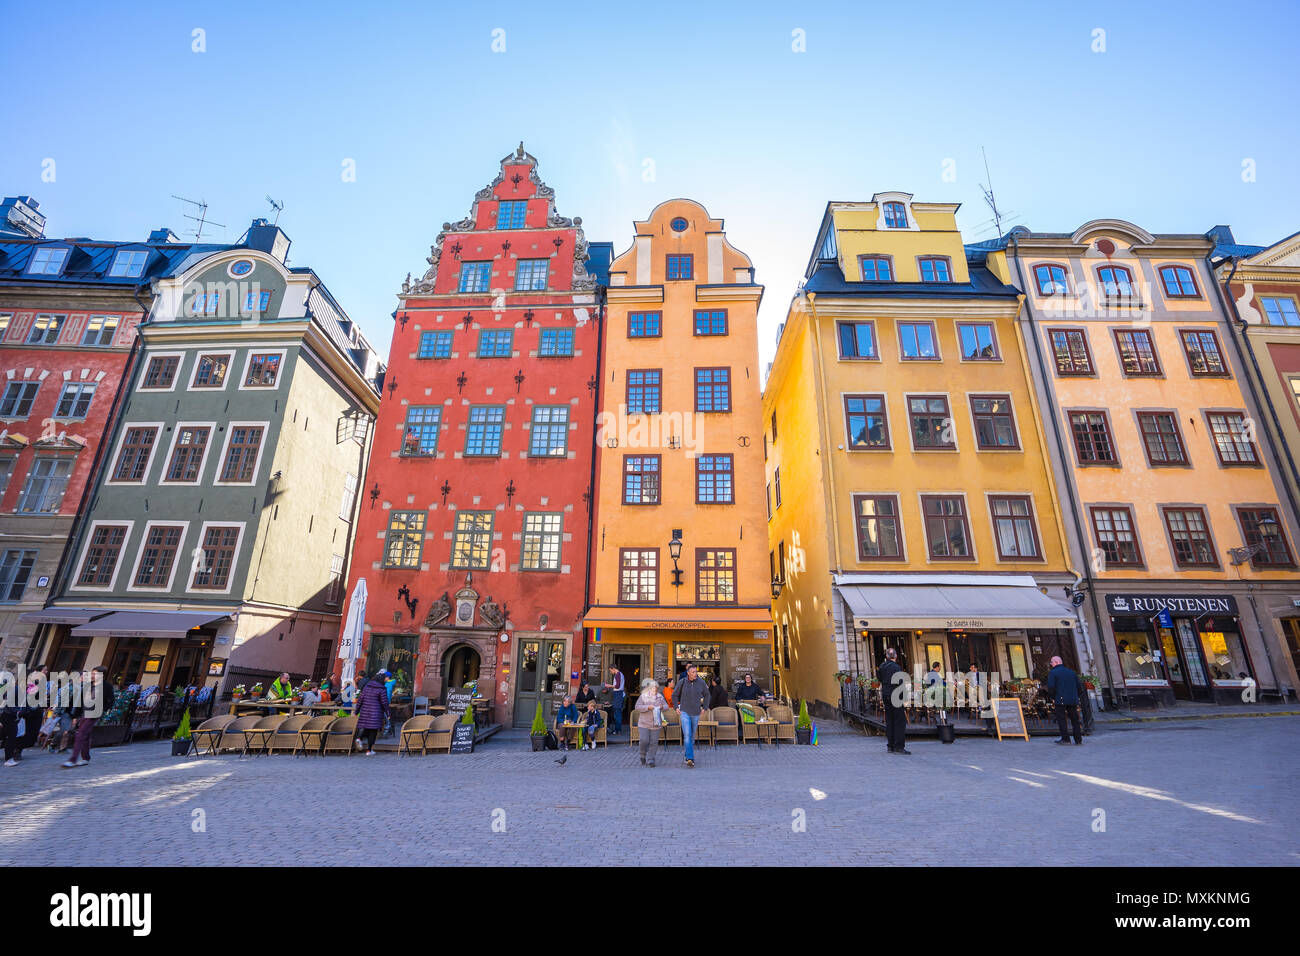 Stockholm, Sweden - May 4, 2017: Gamla Stan old town in Stockholm city, Sweden. - Stock Image